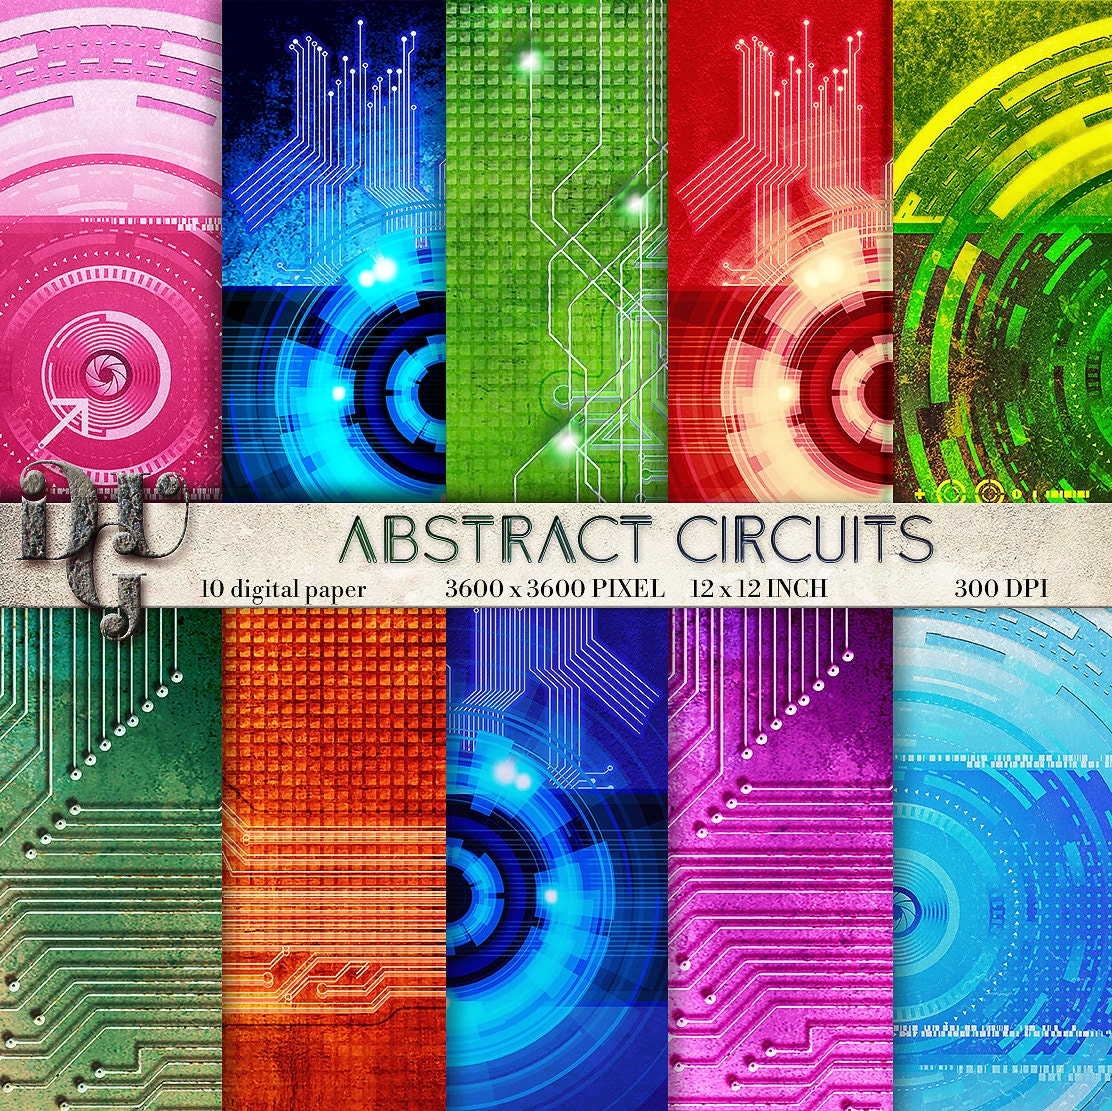 abstract for science paper Abstracts of scientific papers are sometimes poorly written, often lack important information, and occasionally convey a biased picture this paper provides detailed suggestions, with examples, for writing the background, methods, results, and conclusions sections of a good abstract the primary.